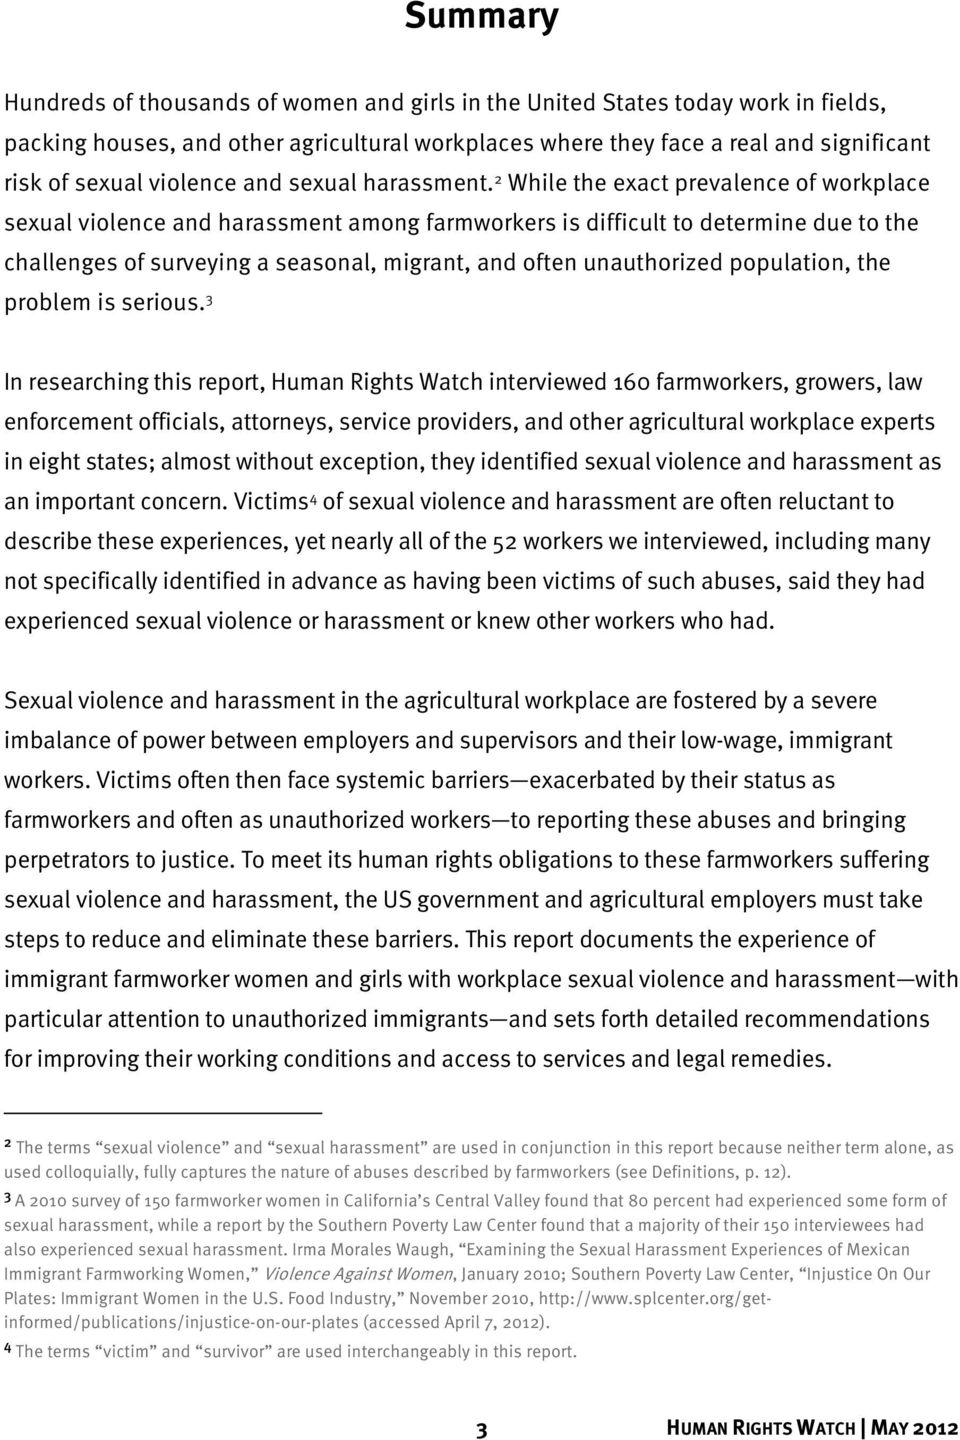 2 While the exact prevalence of workplace sexual violence and harassment among farmworkers is difficult to determine due to the challenges of surveying a seasonal, migrant, and often unauthorized